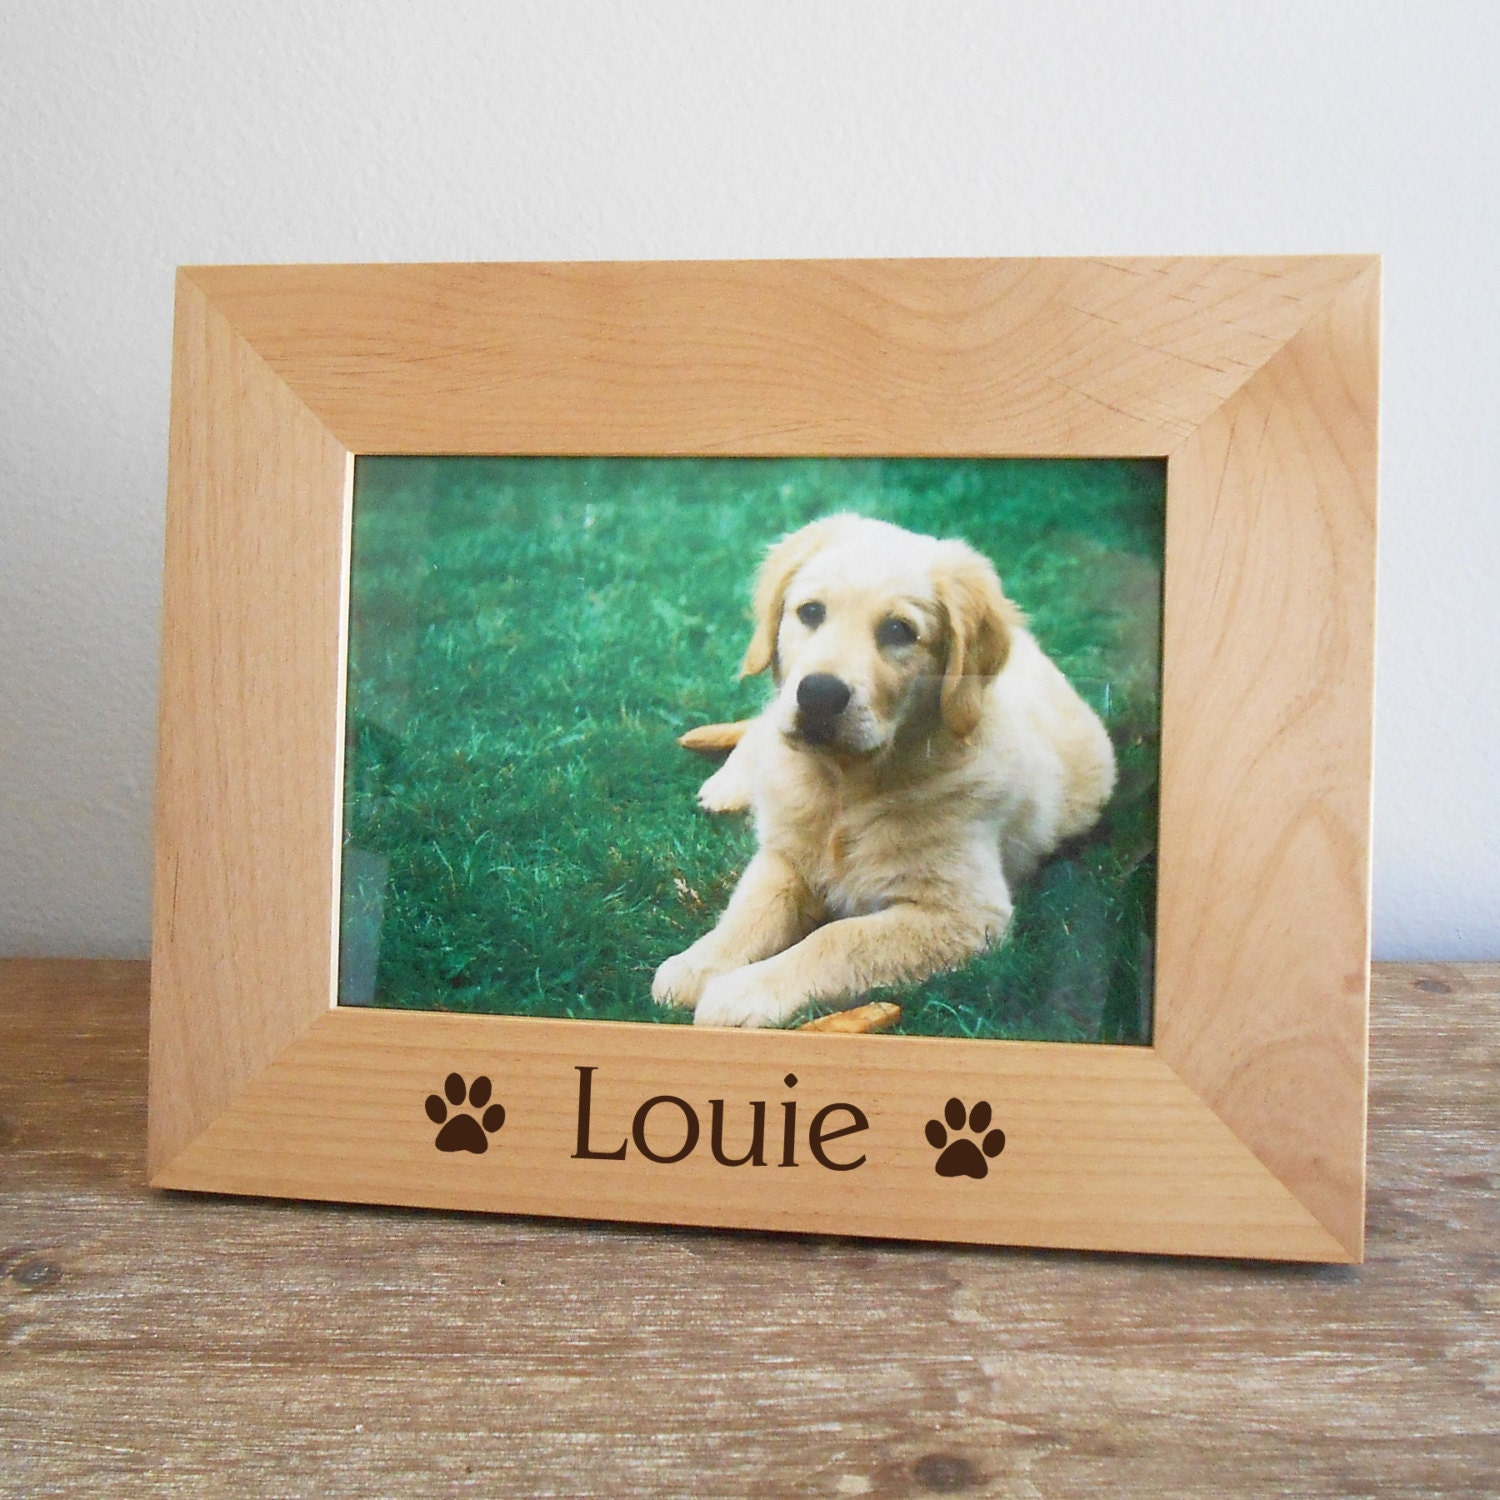 Where I Can Buy A Frame Dog